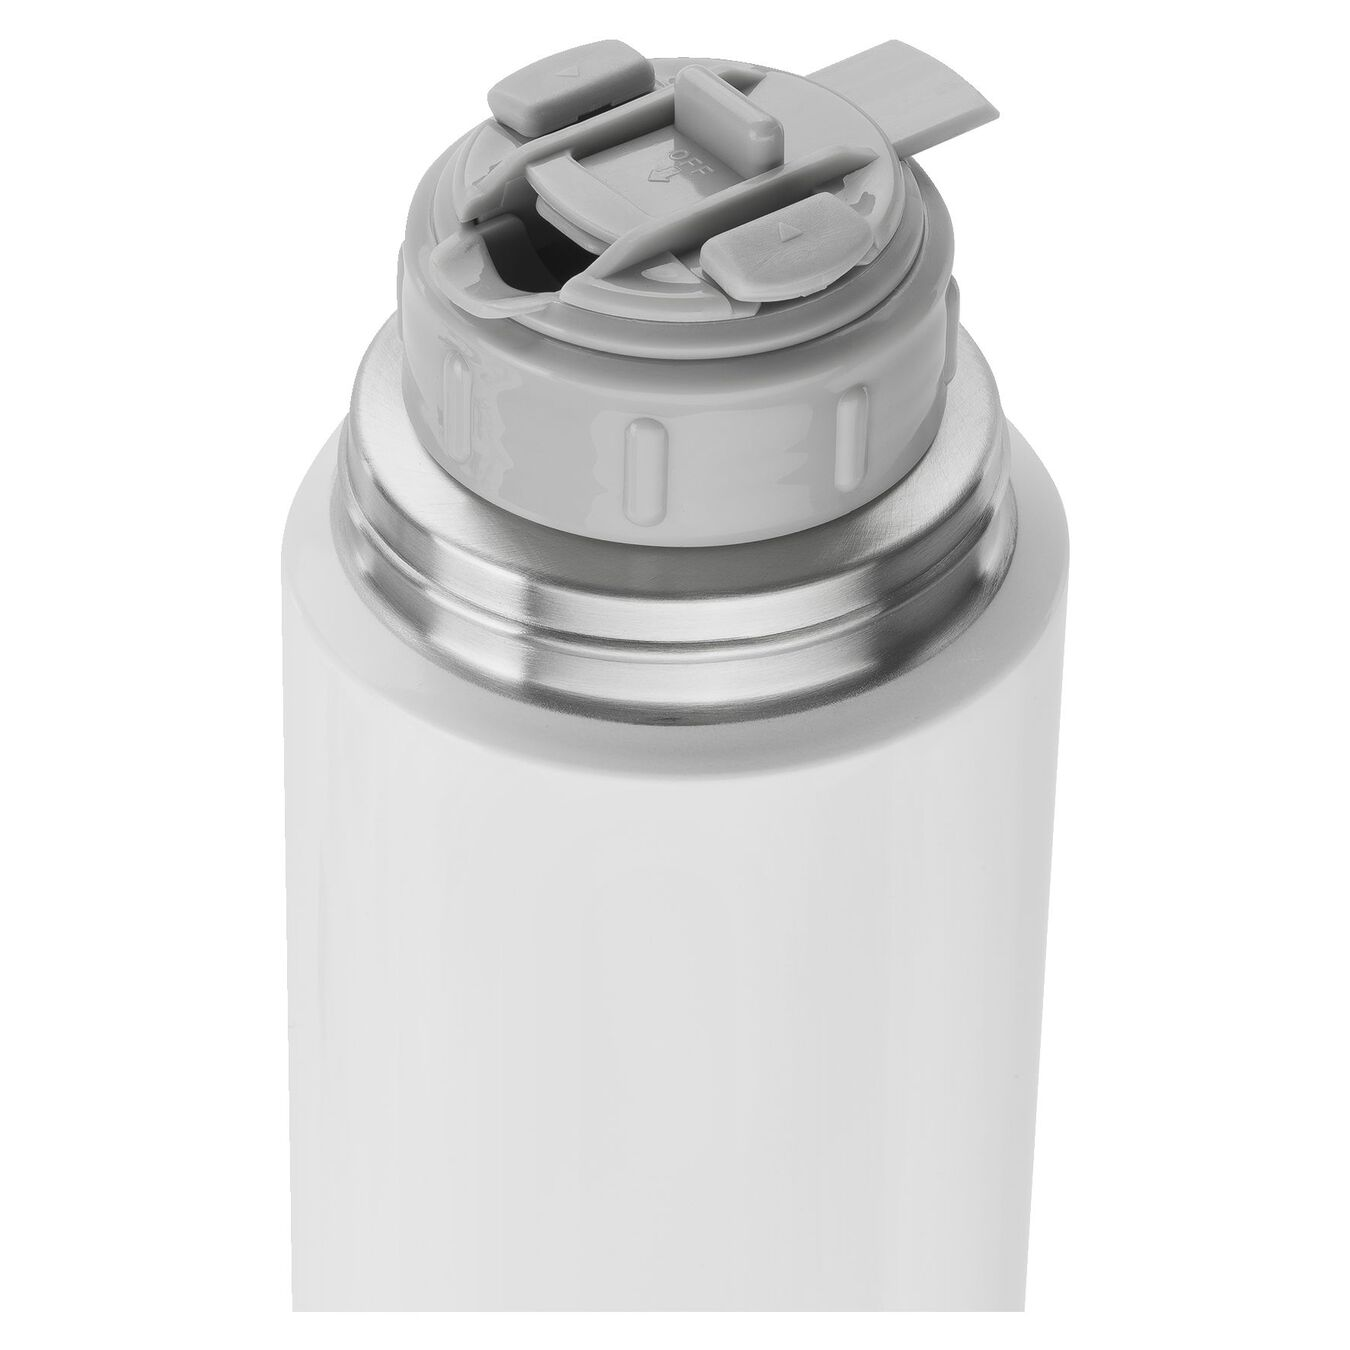 ZWILLING Thermo Beverage Bottle | ZWILLING.COM